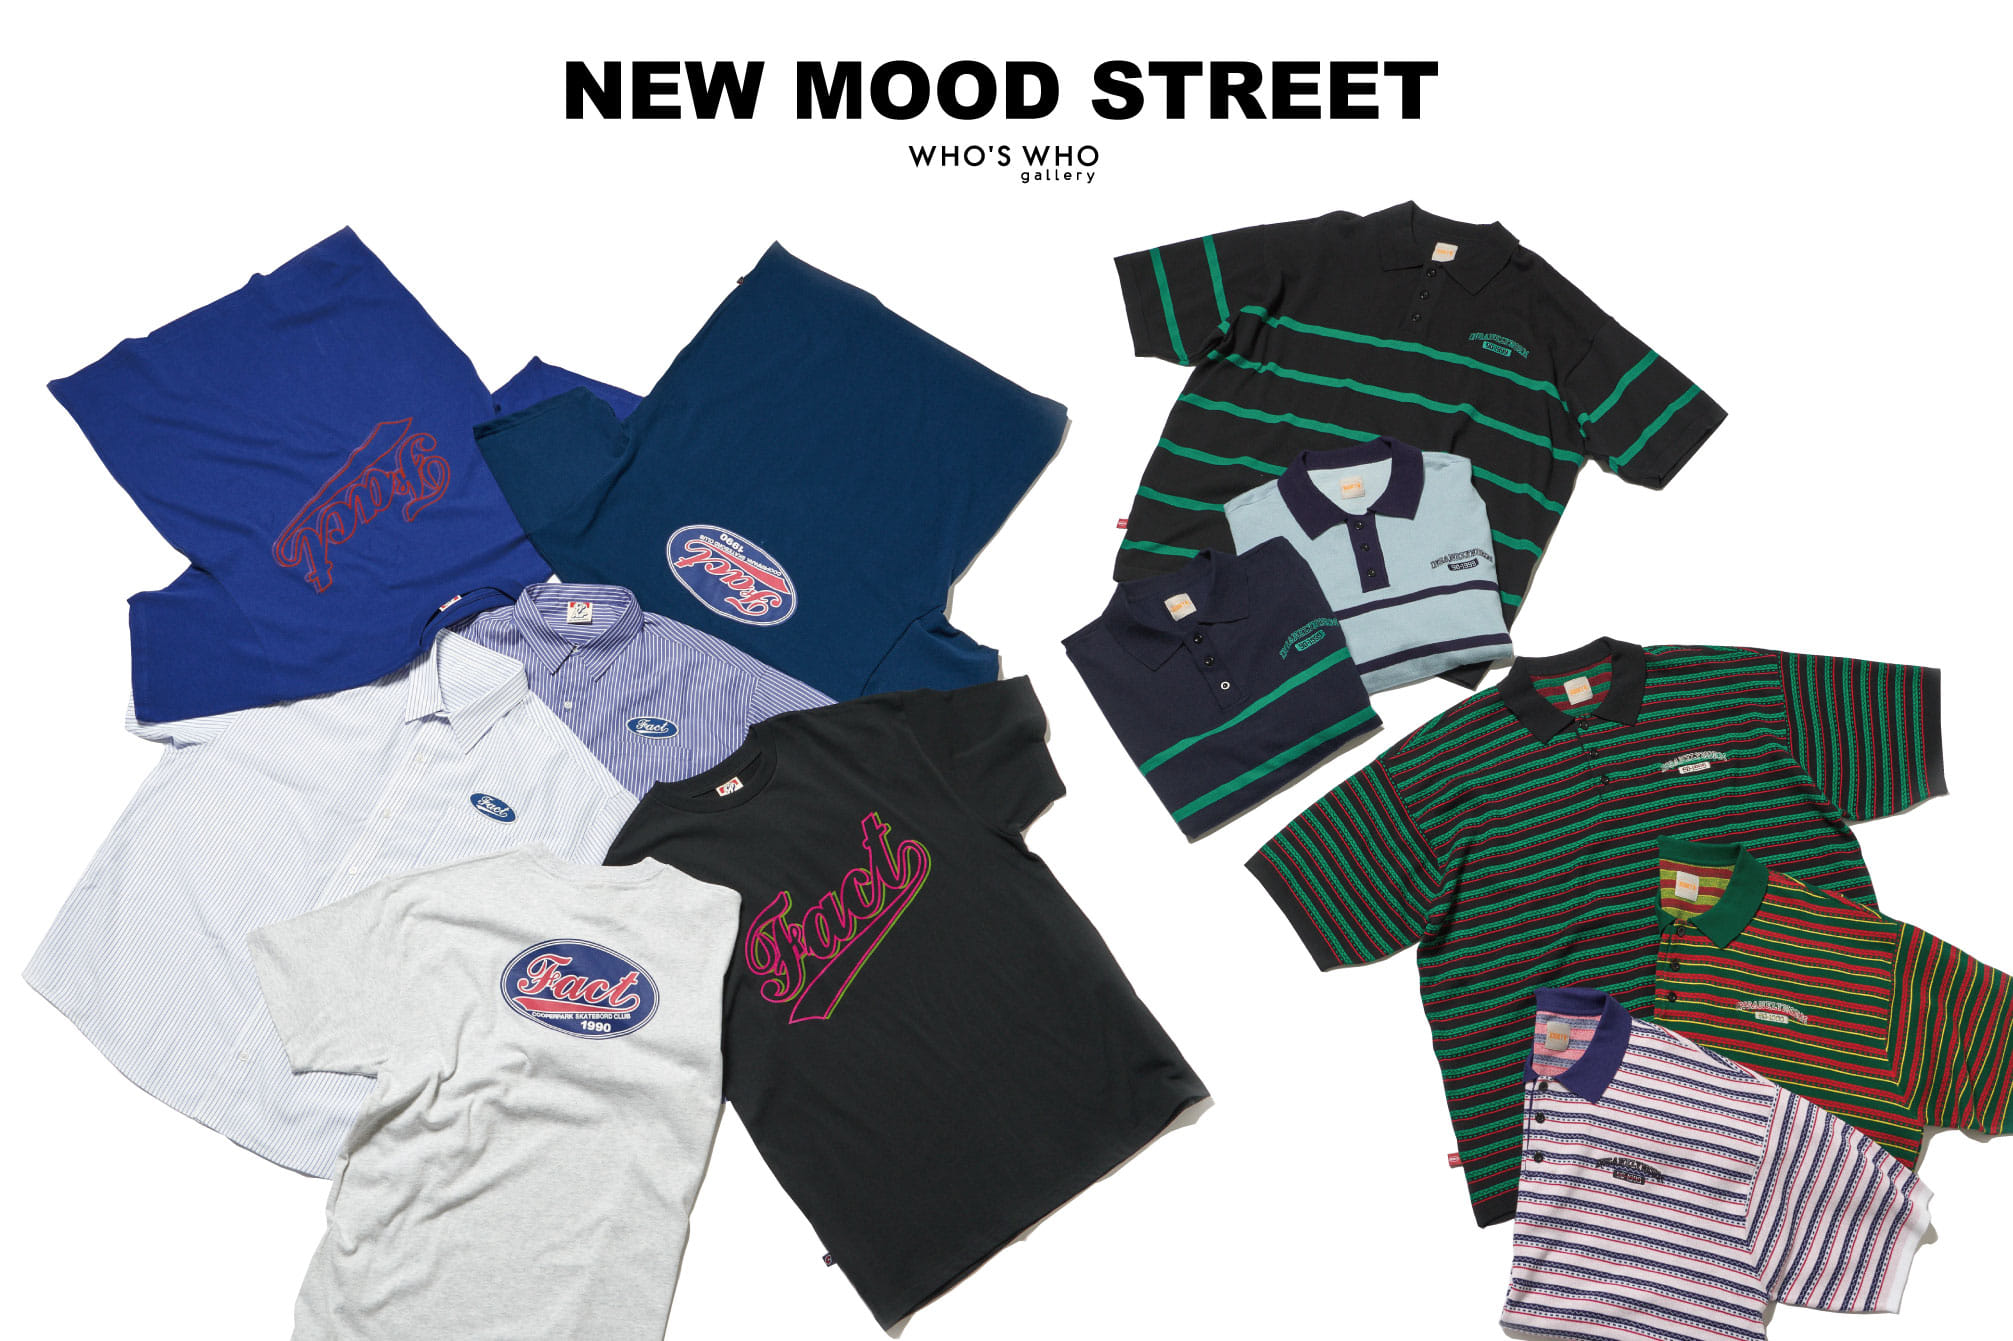 WHO'S WHO gallery 【NEW MOOD STREET】